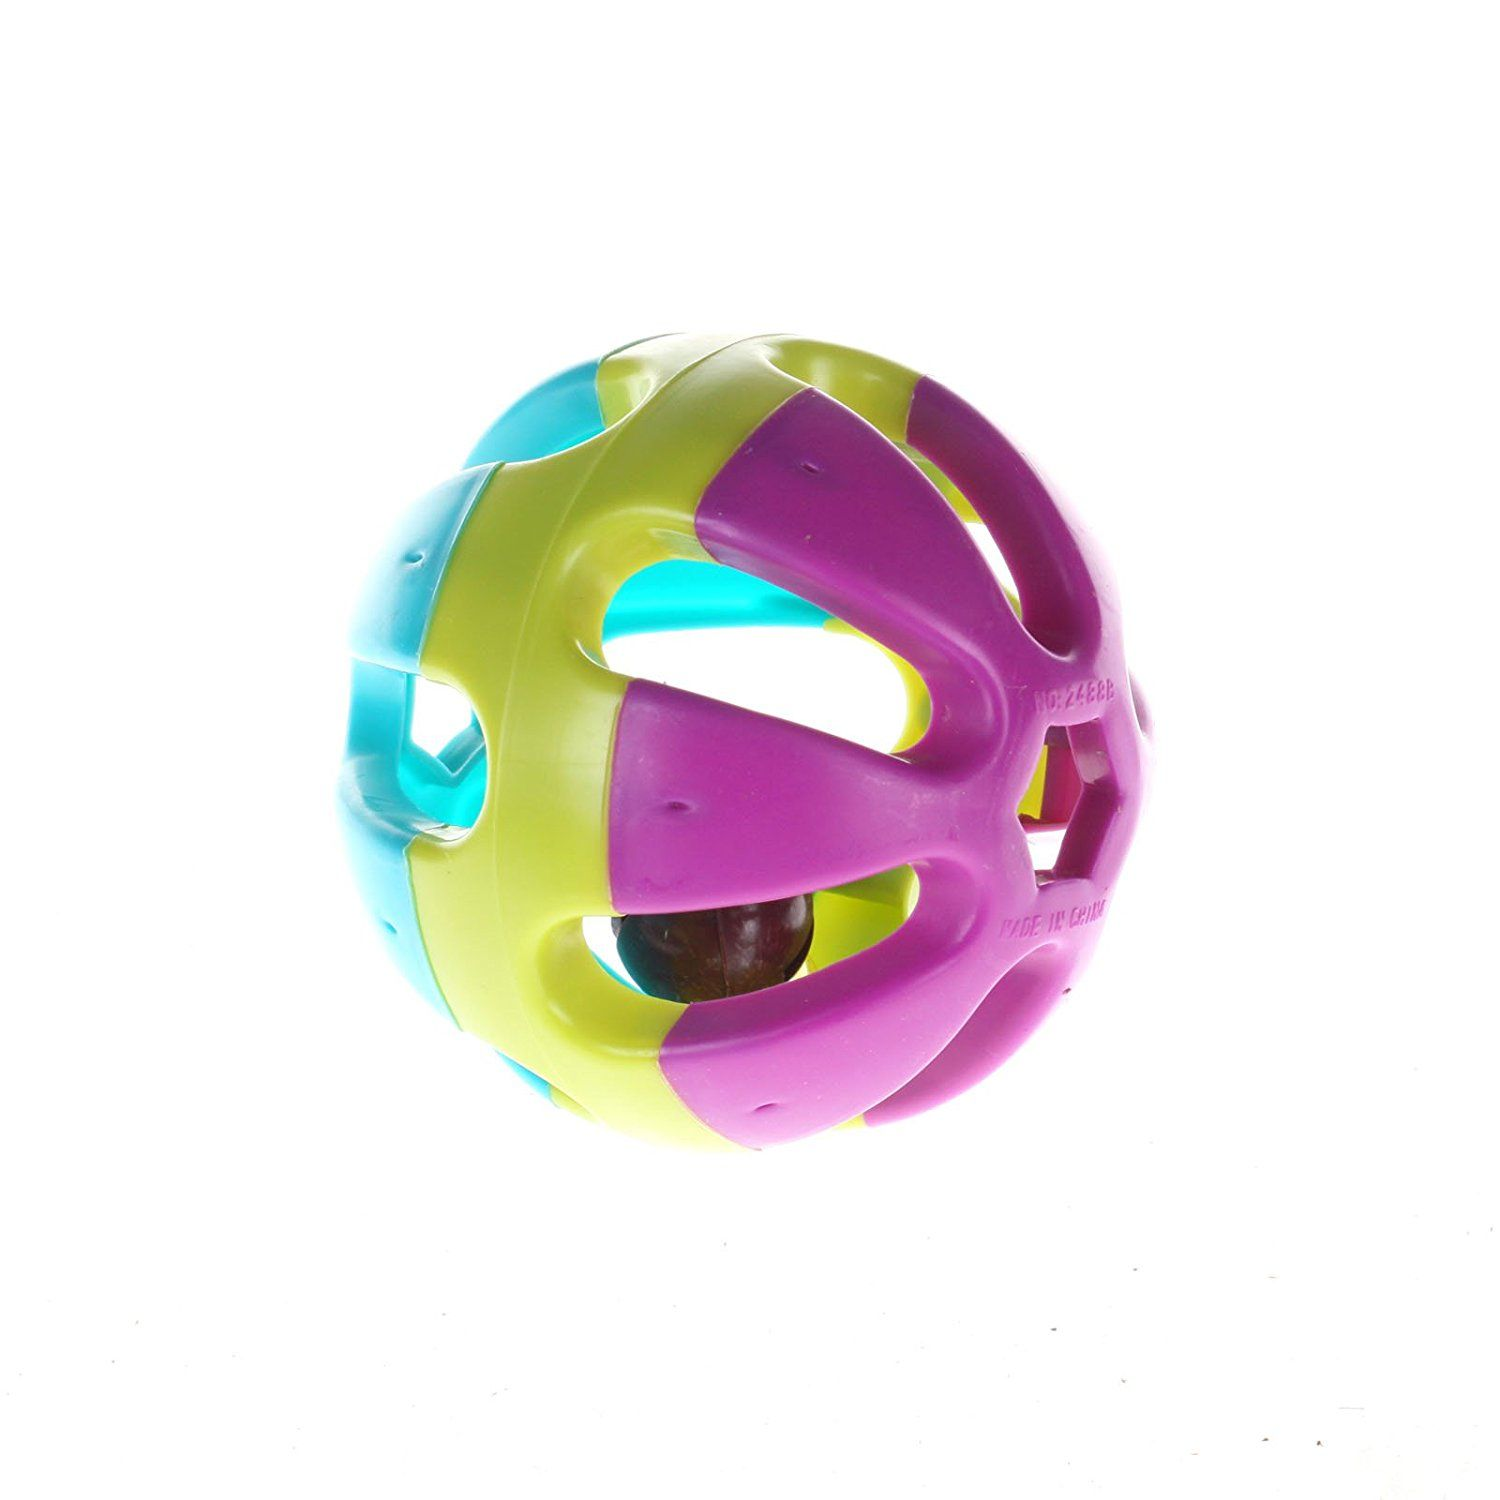 Zfea Bird Toy Bell Balls Colorful Ball For Budgie Finch Parrot Rabbit Cat Hamster See This Awesome Image Cat Toys Bird Toys Toy Rattle Hamster Toys